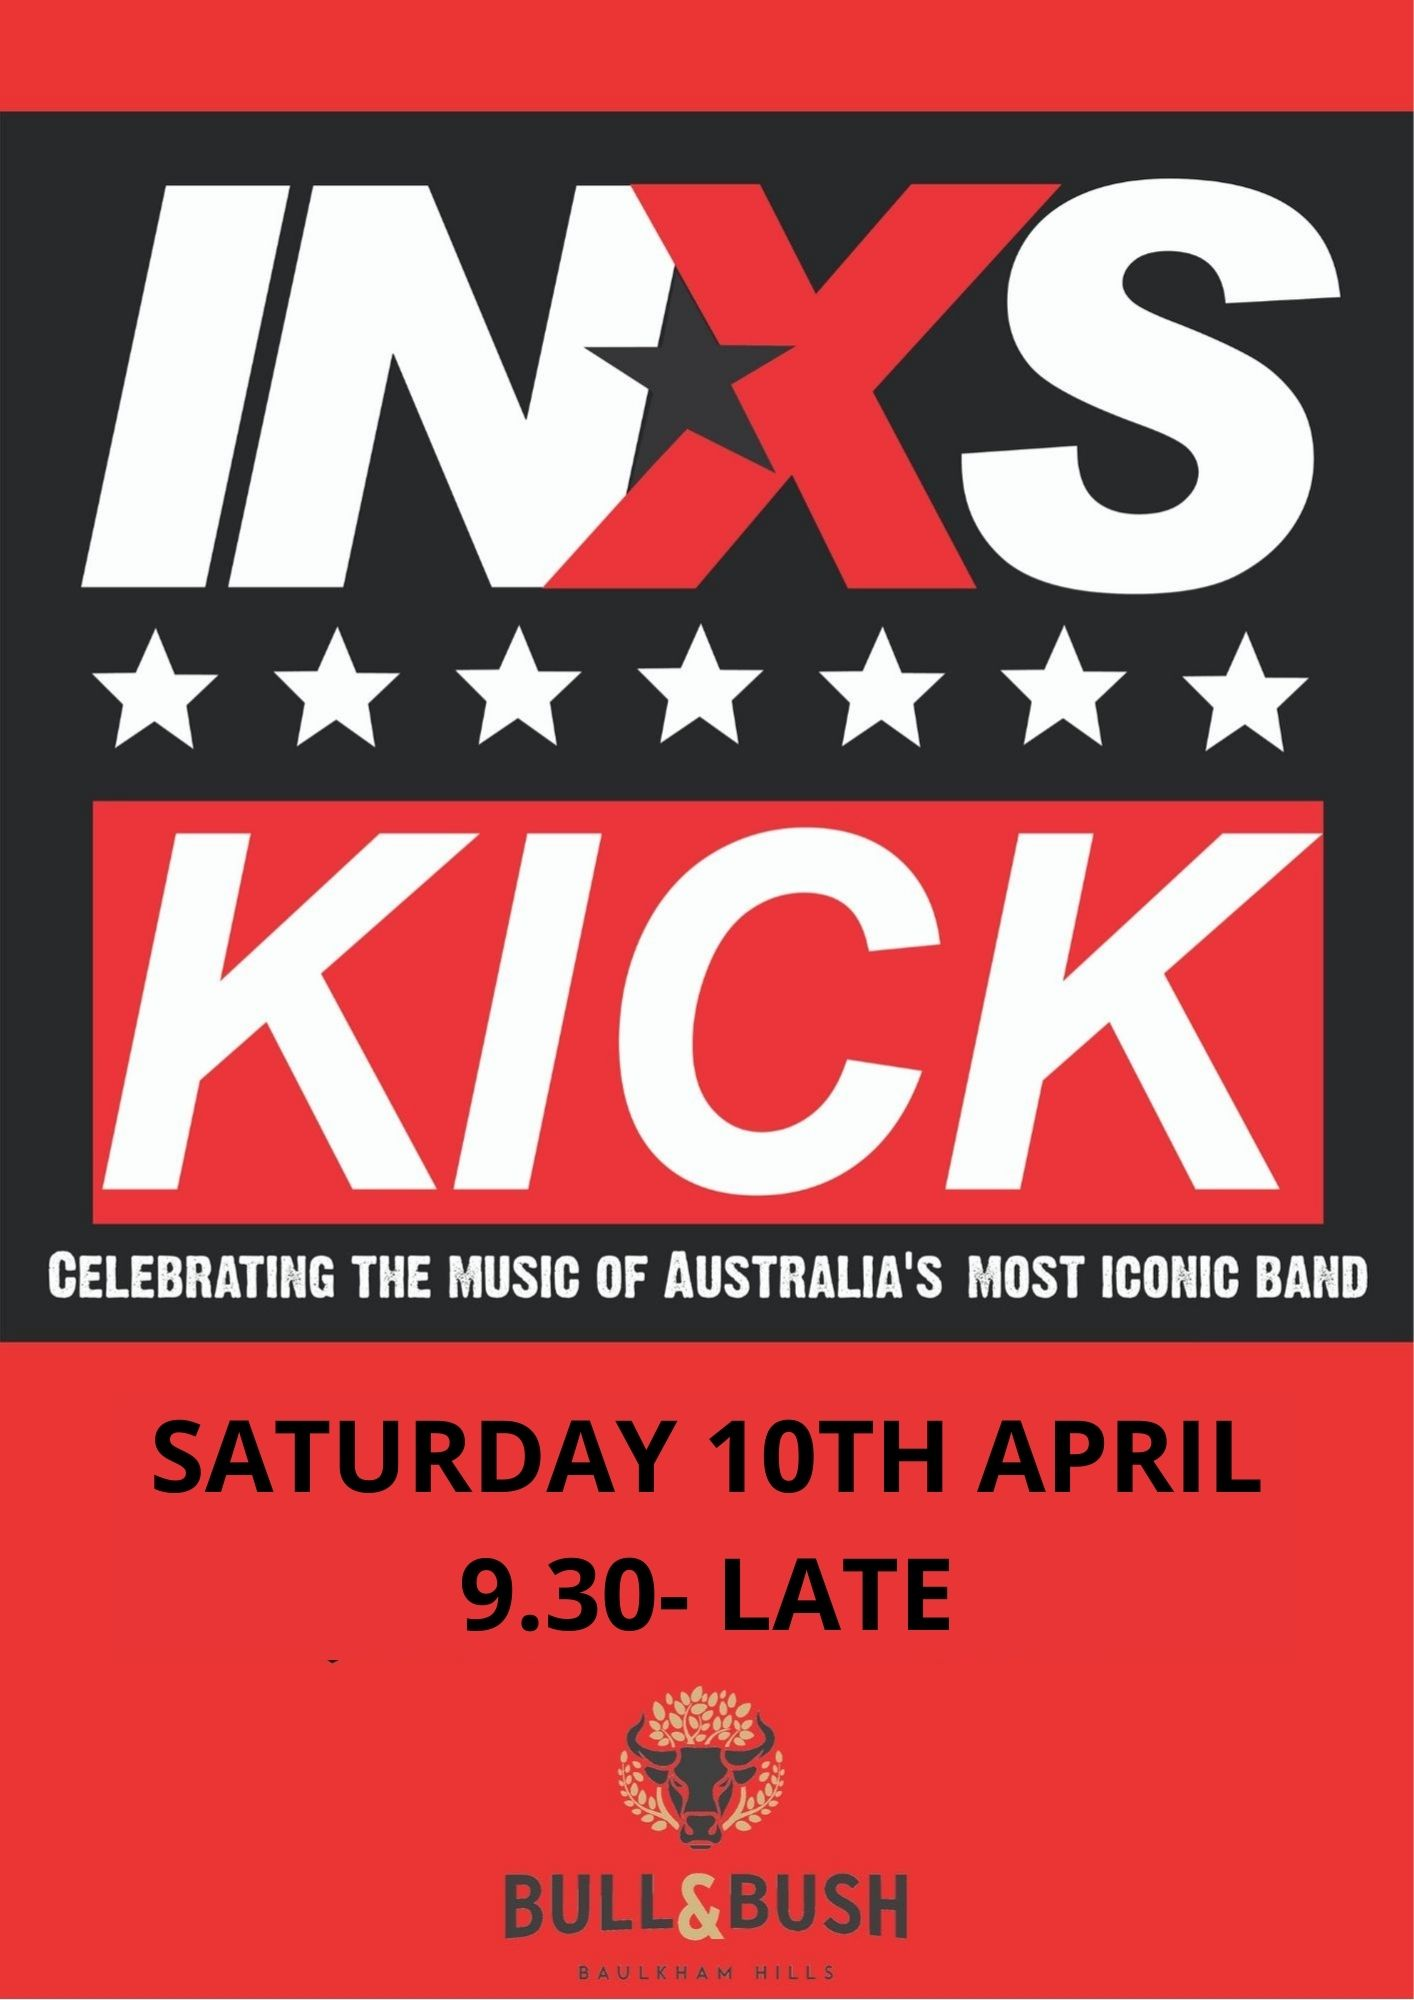 INXS-10TH-APRIL-9.30-LATE